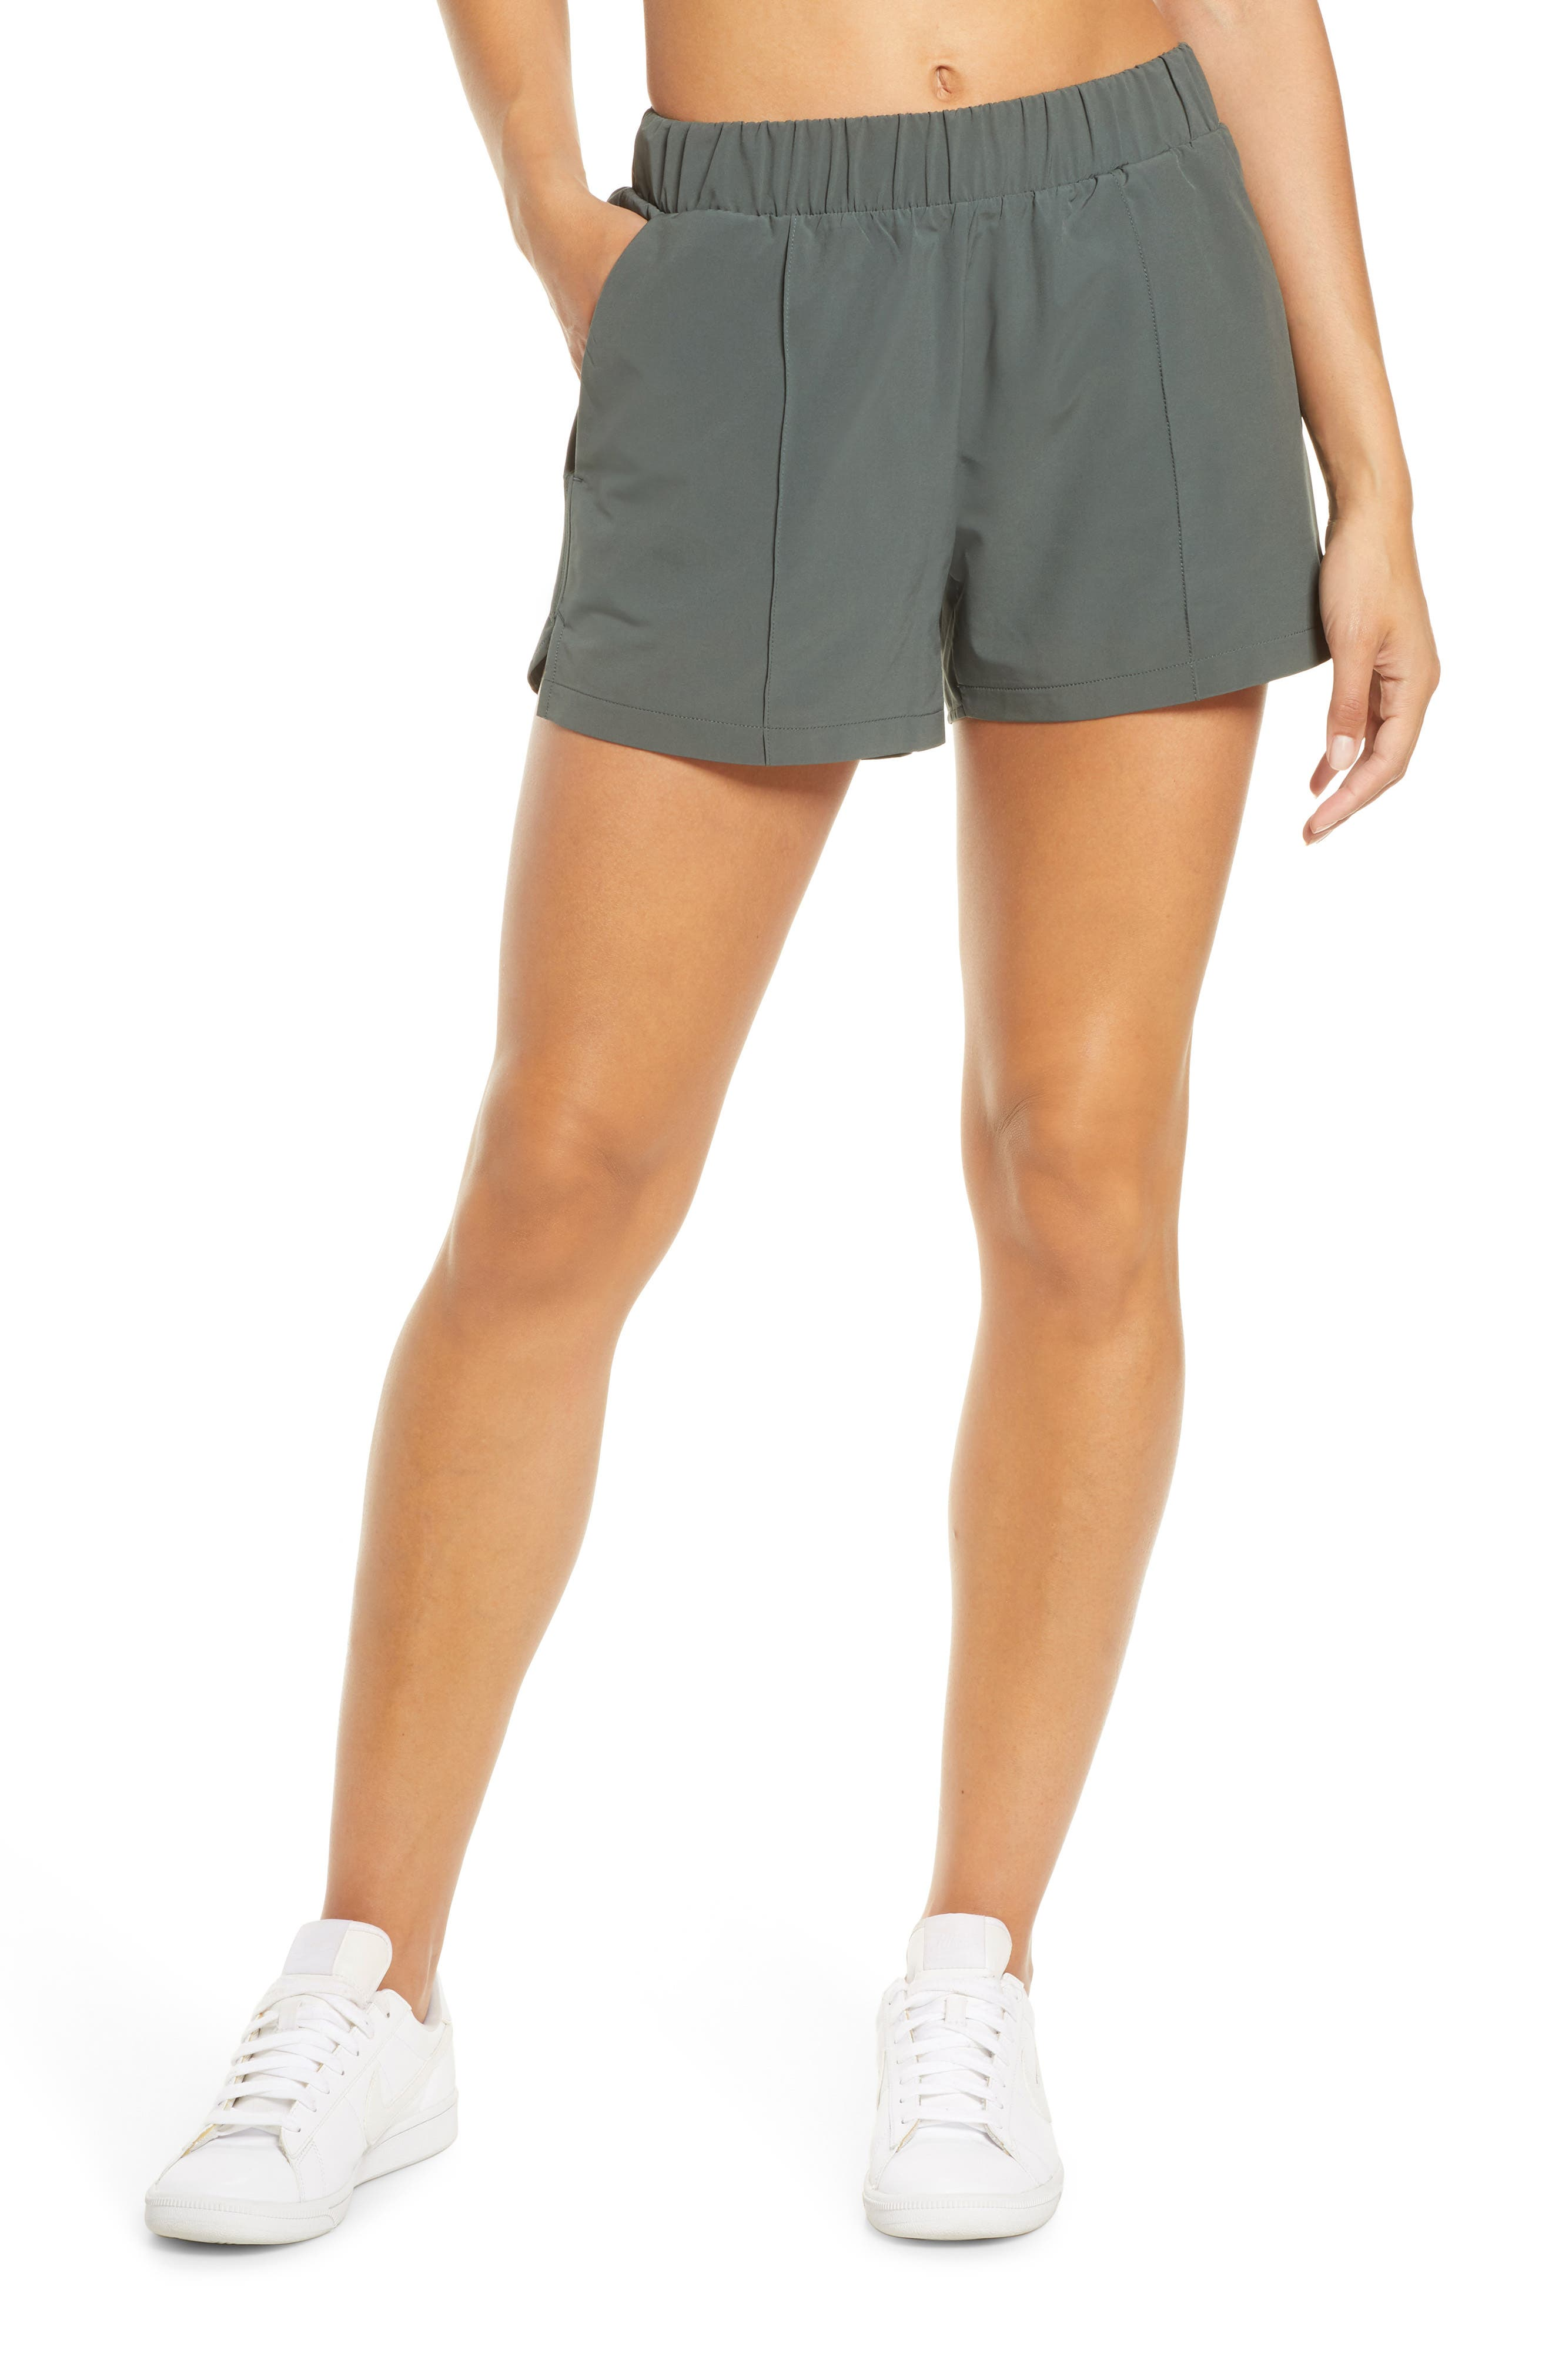 Lightweight shorts in a recycled woven stretch fabric boast an easy elastic waist and movement-friendly vented hems, making them perfect for travel or workouts. A side-seam zip pocket securely stashes cash or a key. Style Name: Zella Taylor Getaway High Waist Recycled Polyester Shorts. Style Number: 5962769. Available in stores.